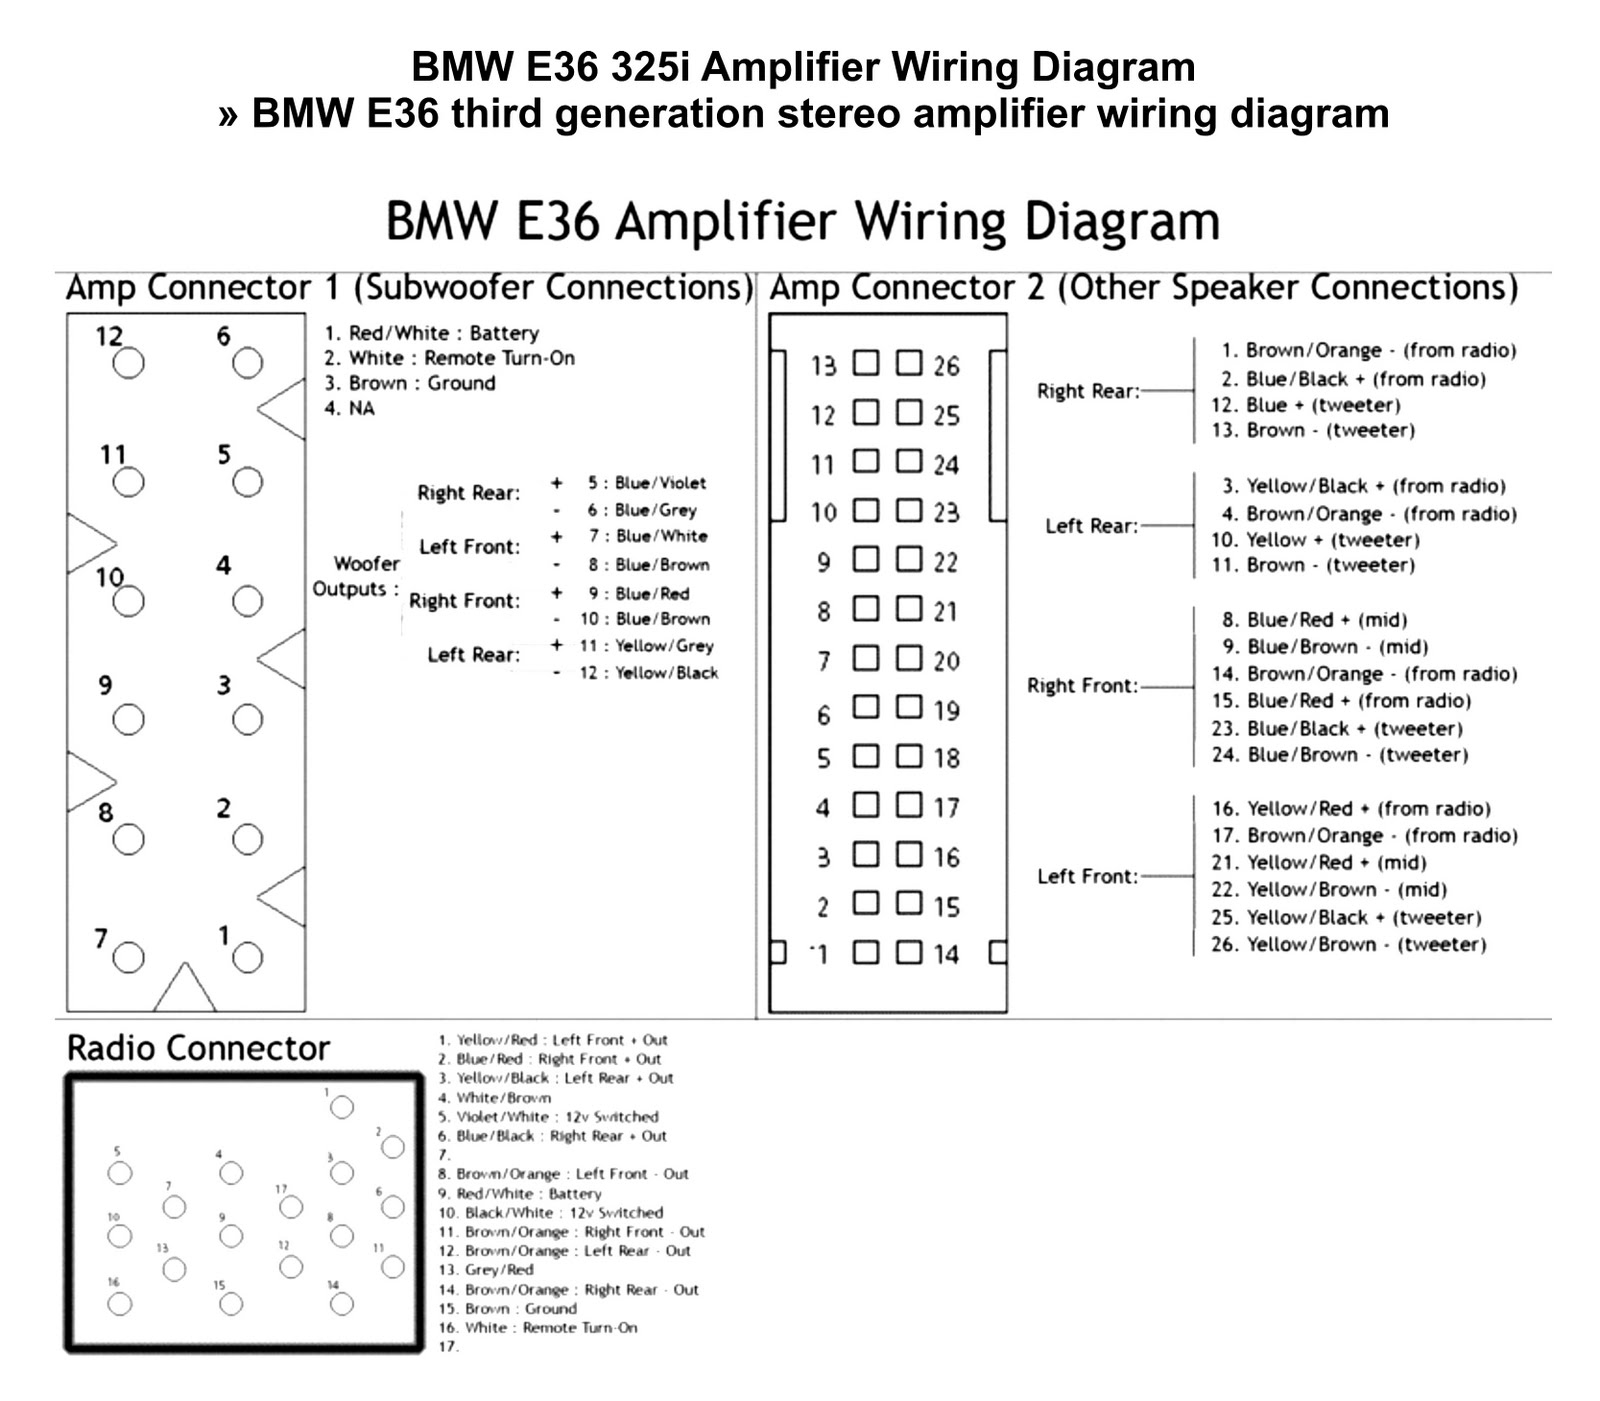 Schematic Diagram E36 Wiring - Collection Of Wiring Diagram •